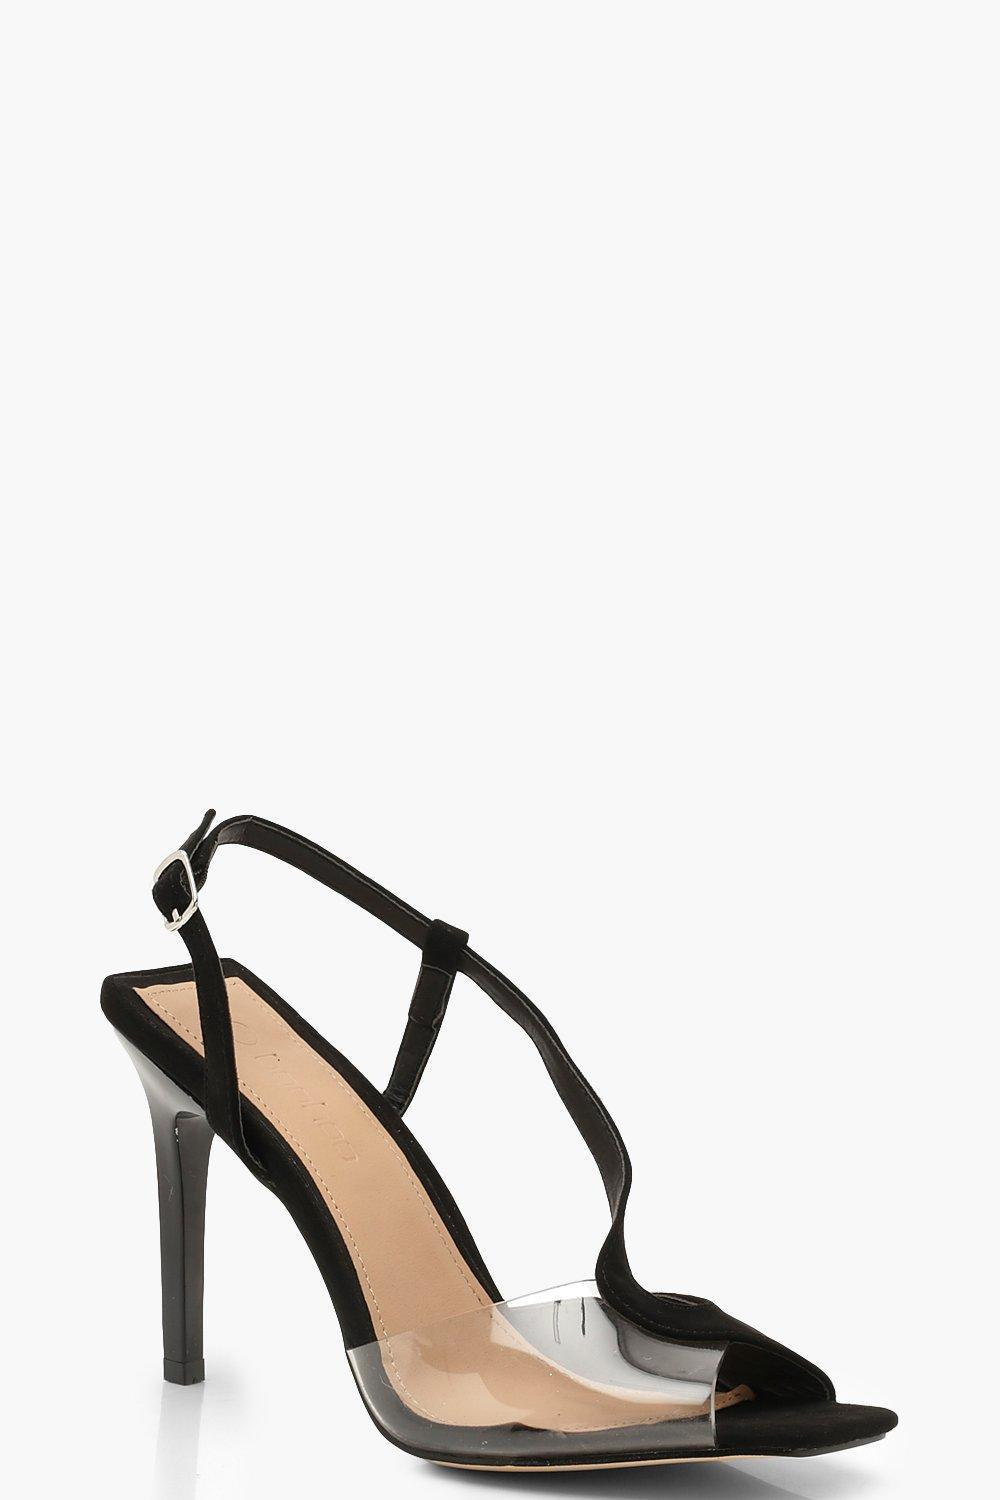 605f16873fc Boohoo Clear Panel Asymmetric Square Toe Heels in Black - Lyst